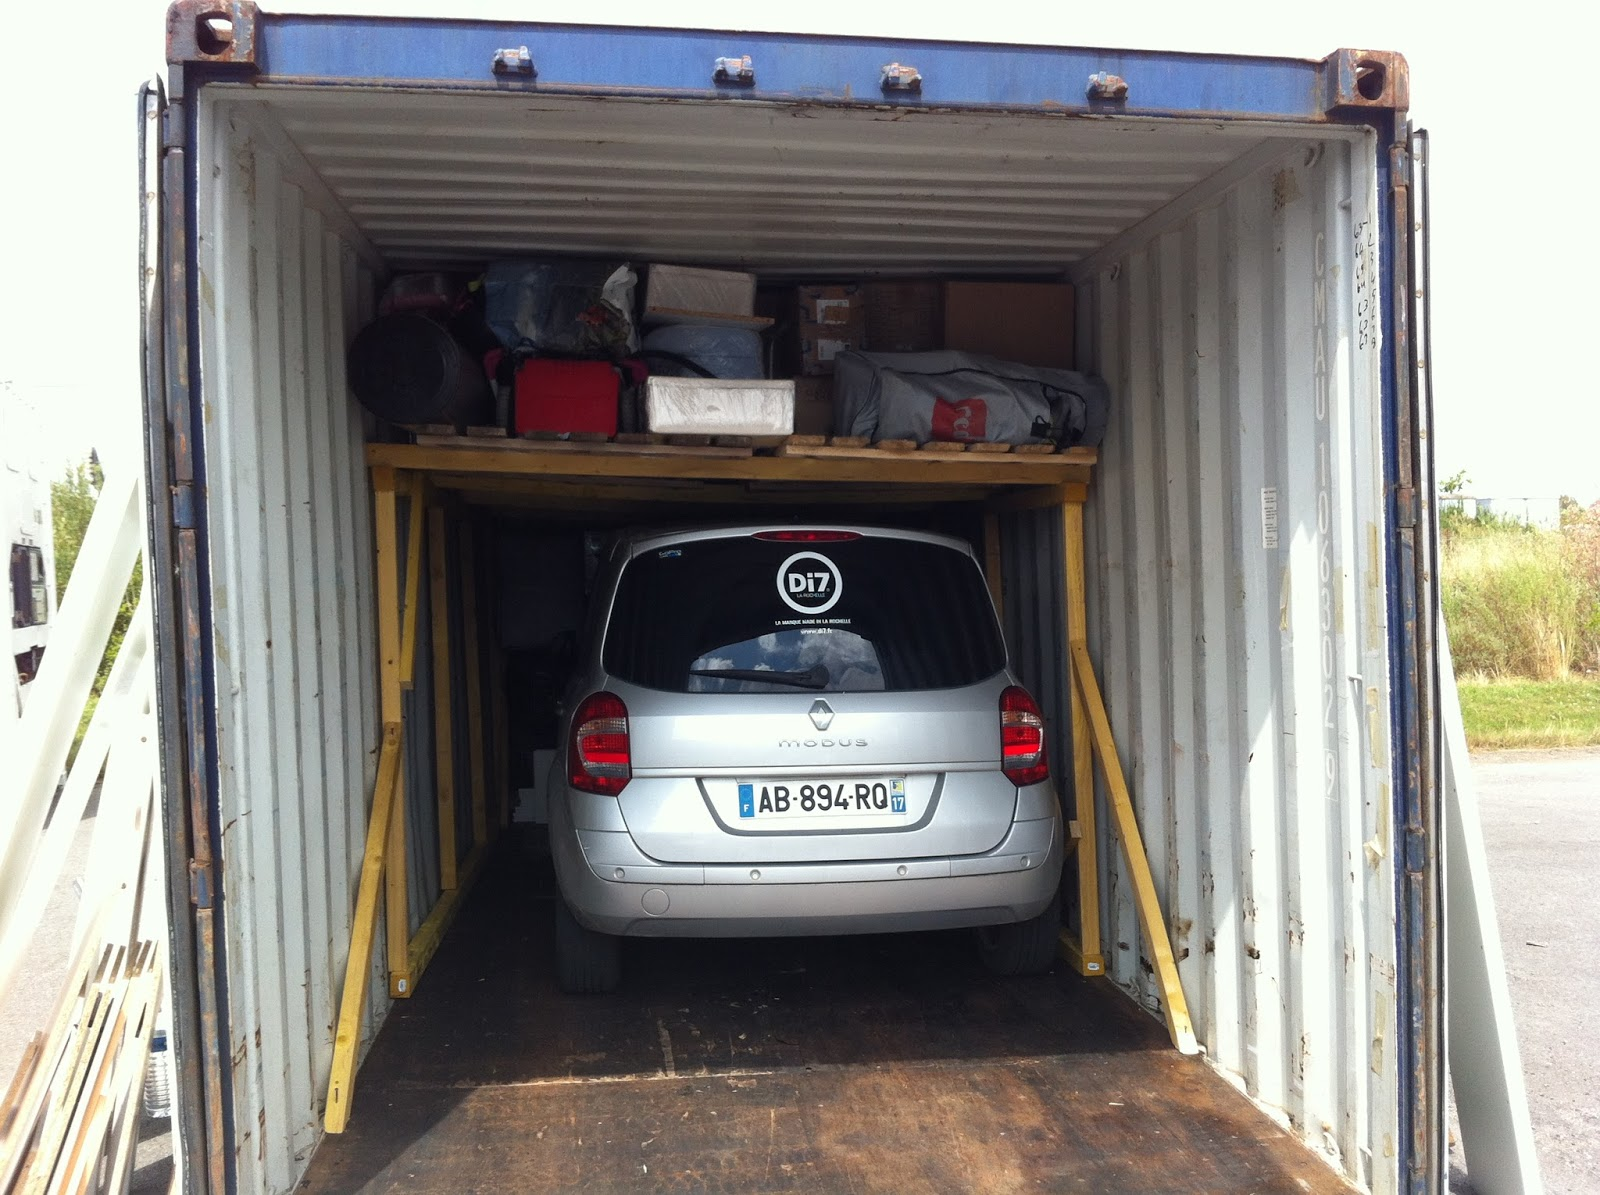 Direction la r union juillet 2013 for Taille container maison